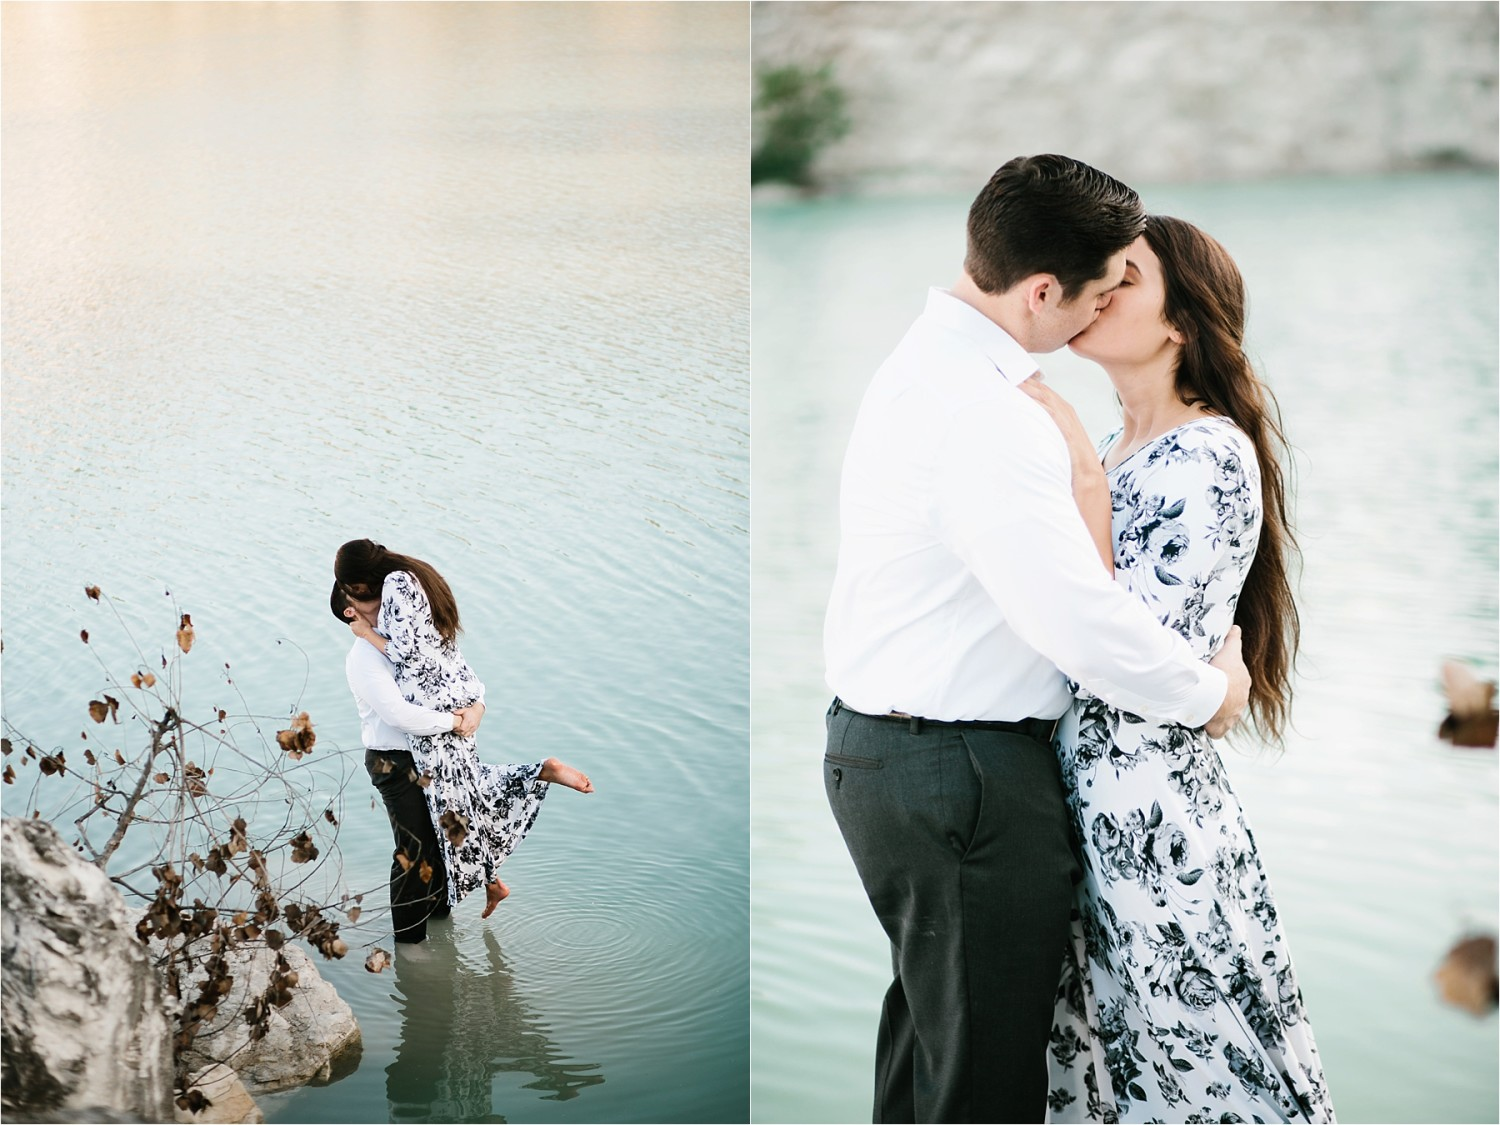 an-intimate-sunrise-session-by-north-texas-wedding-photographer-rachel-meagan-photography-_-47